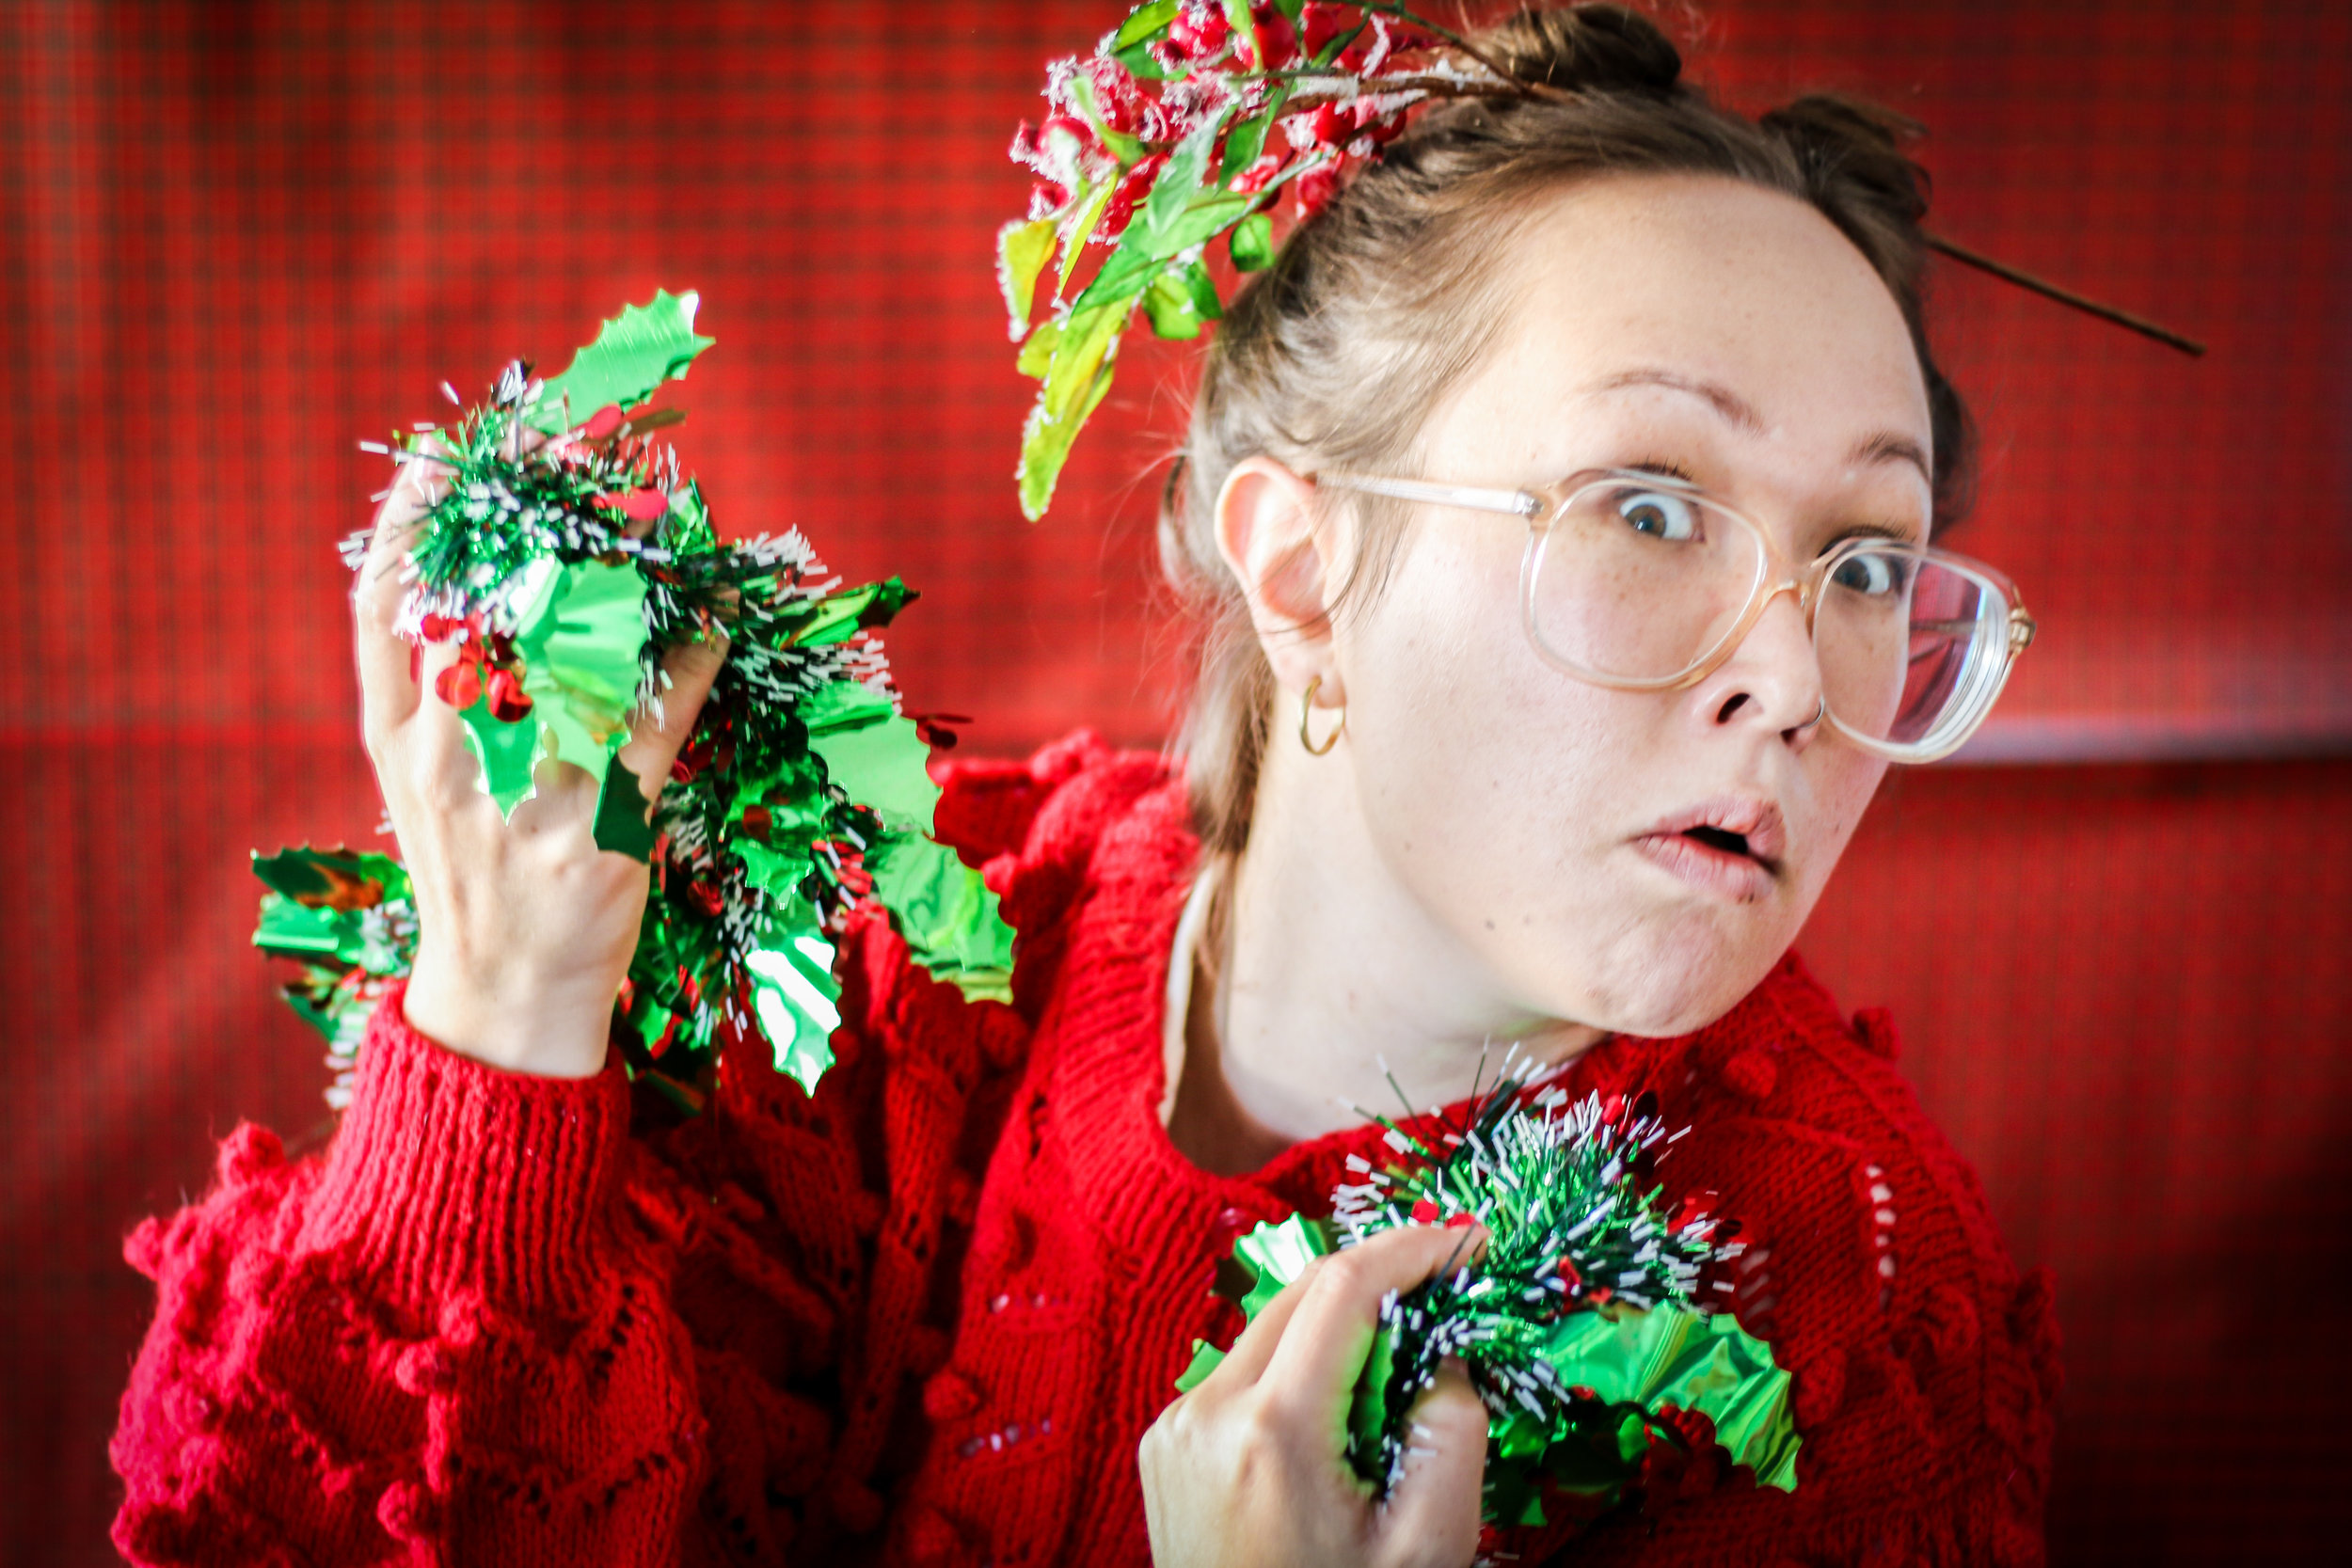 Jenny Nelson covered in mistletoe. Photo by Rebecca Hodges.